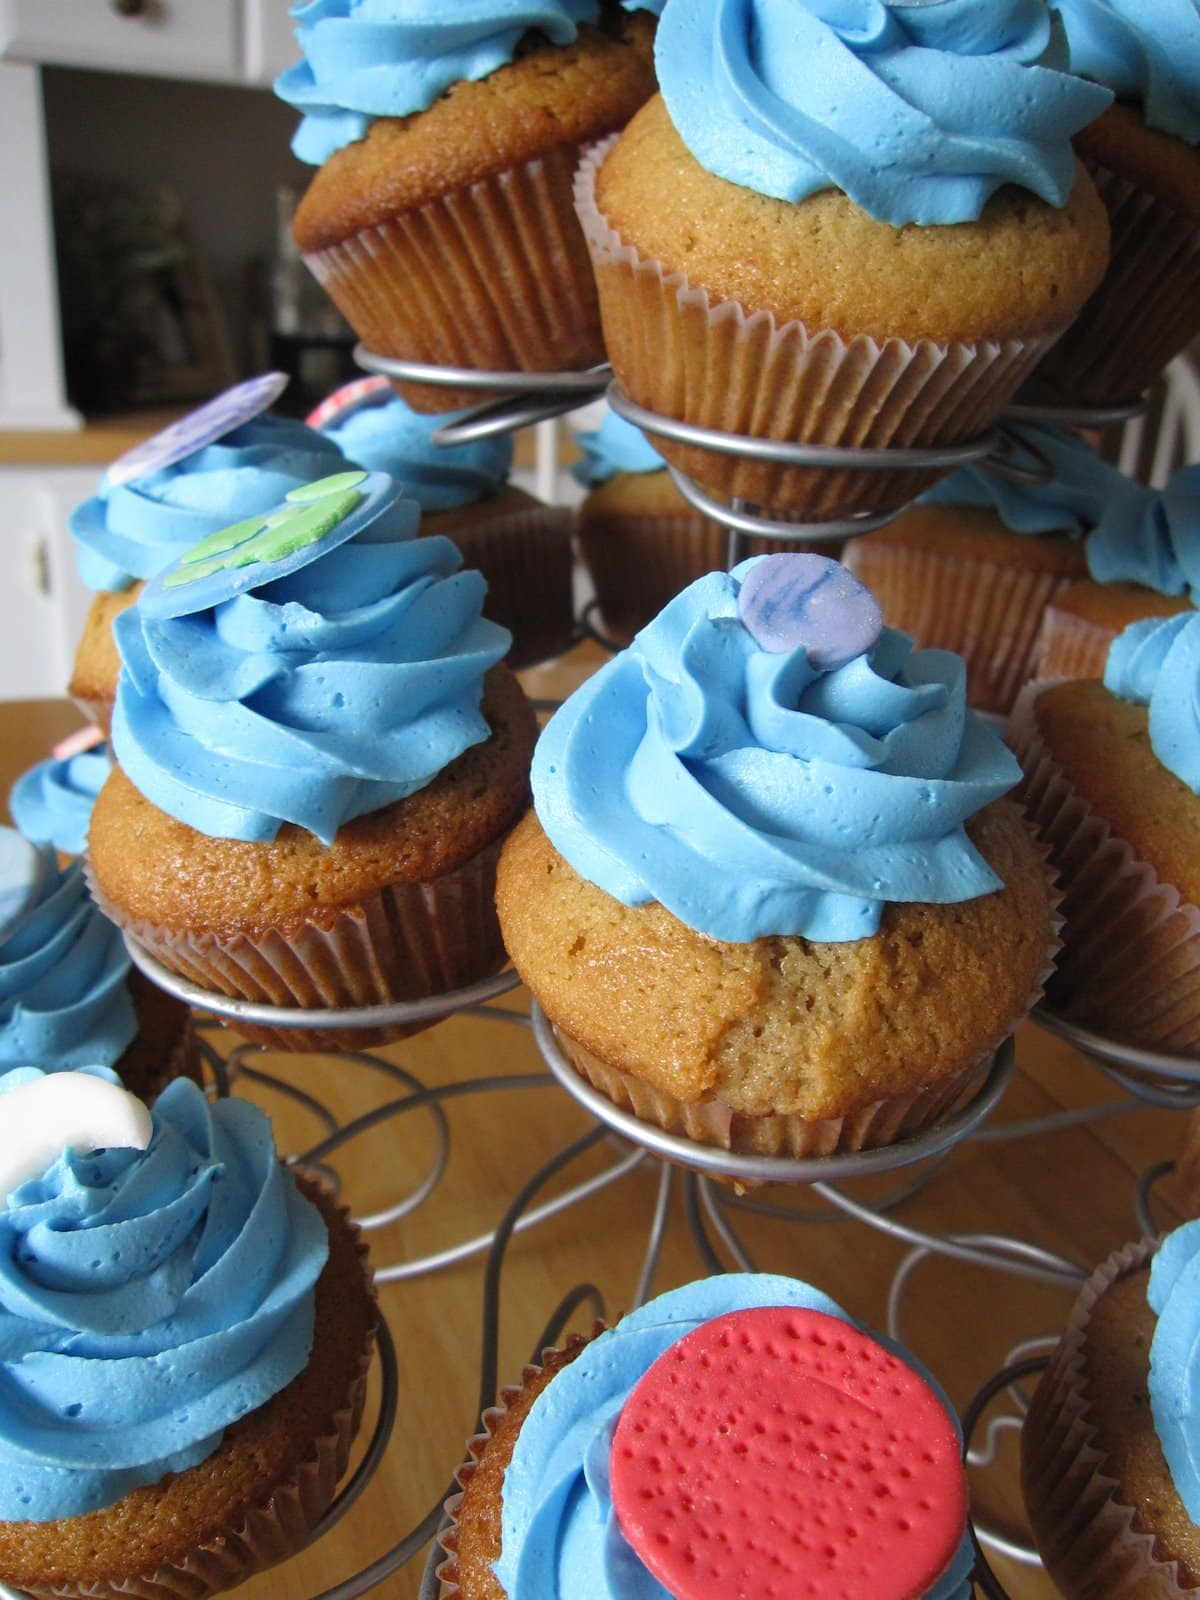 Several blue frosted cupcakes with planet decorations